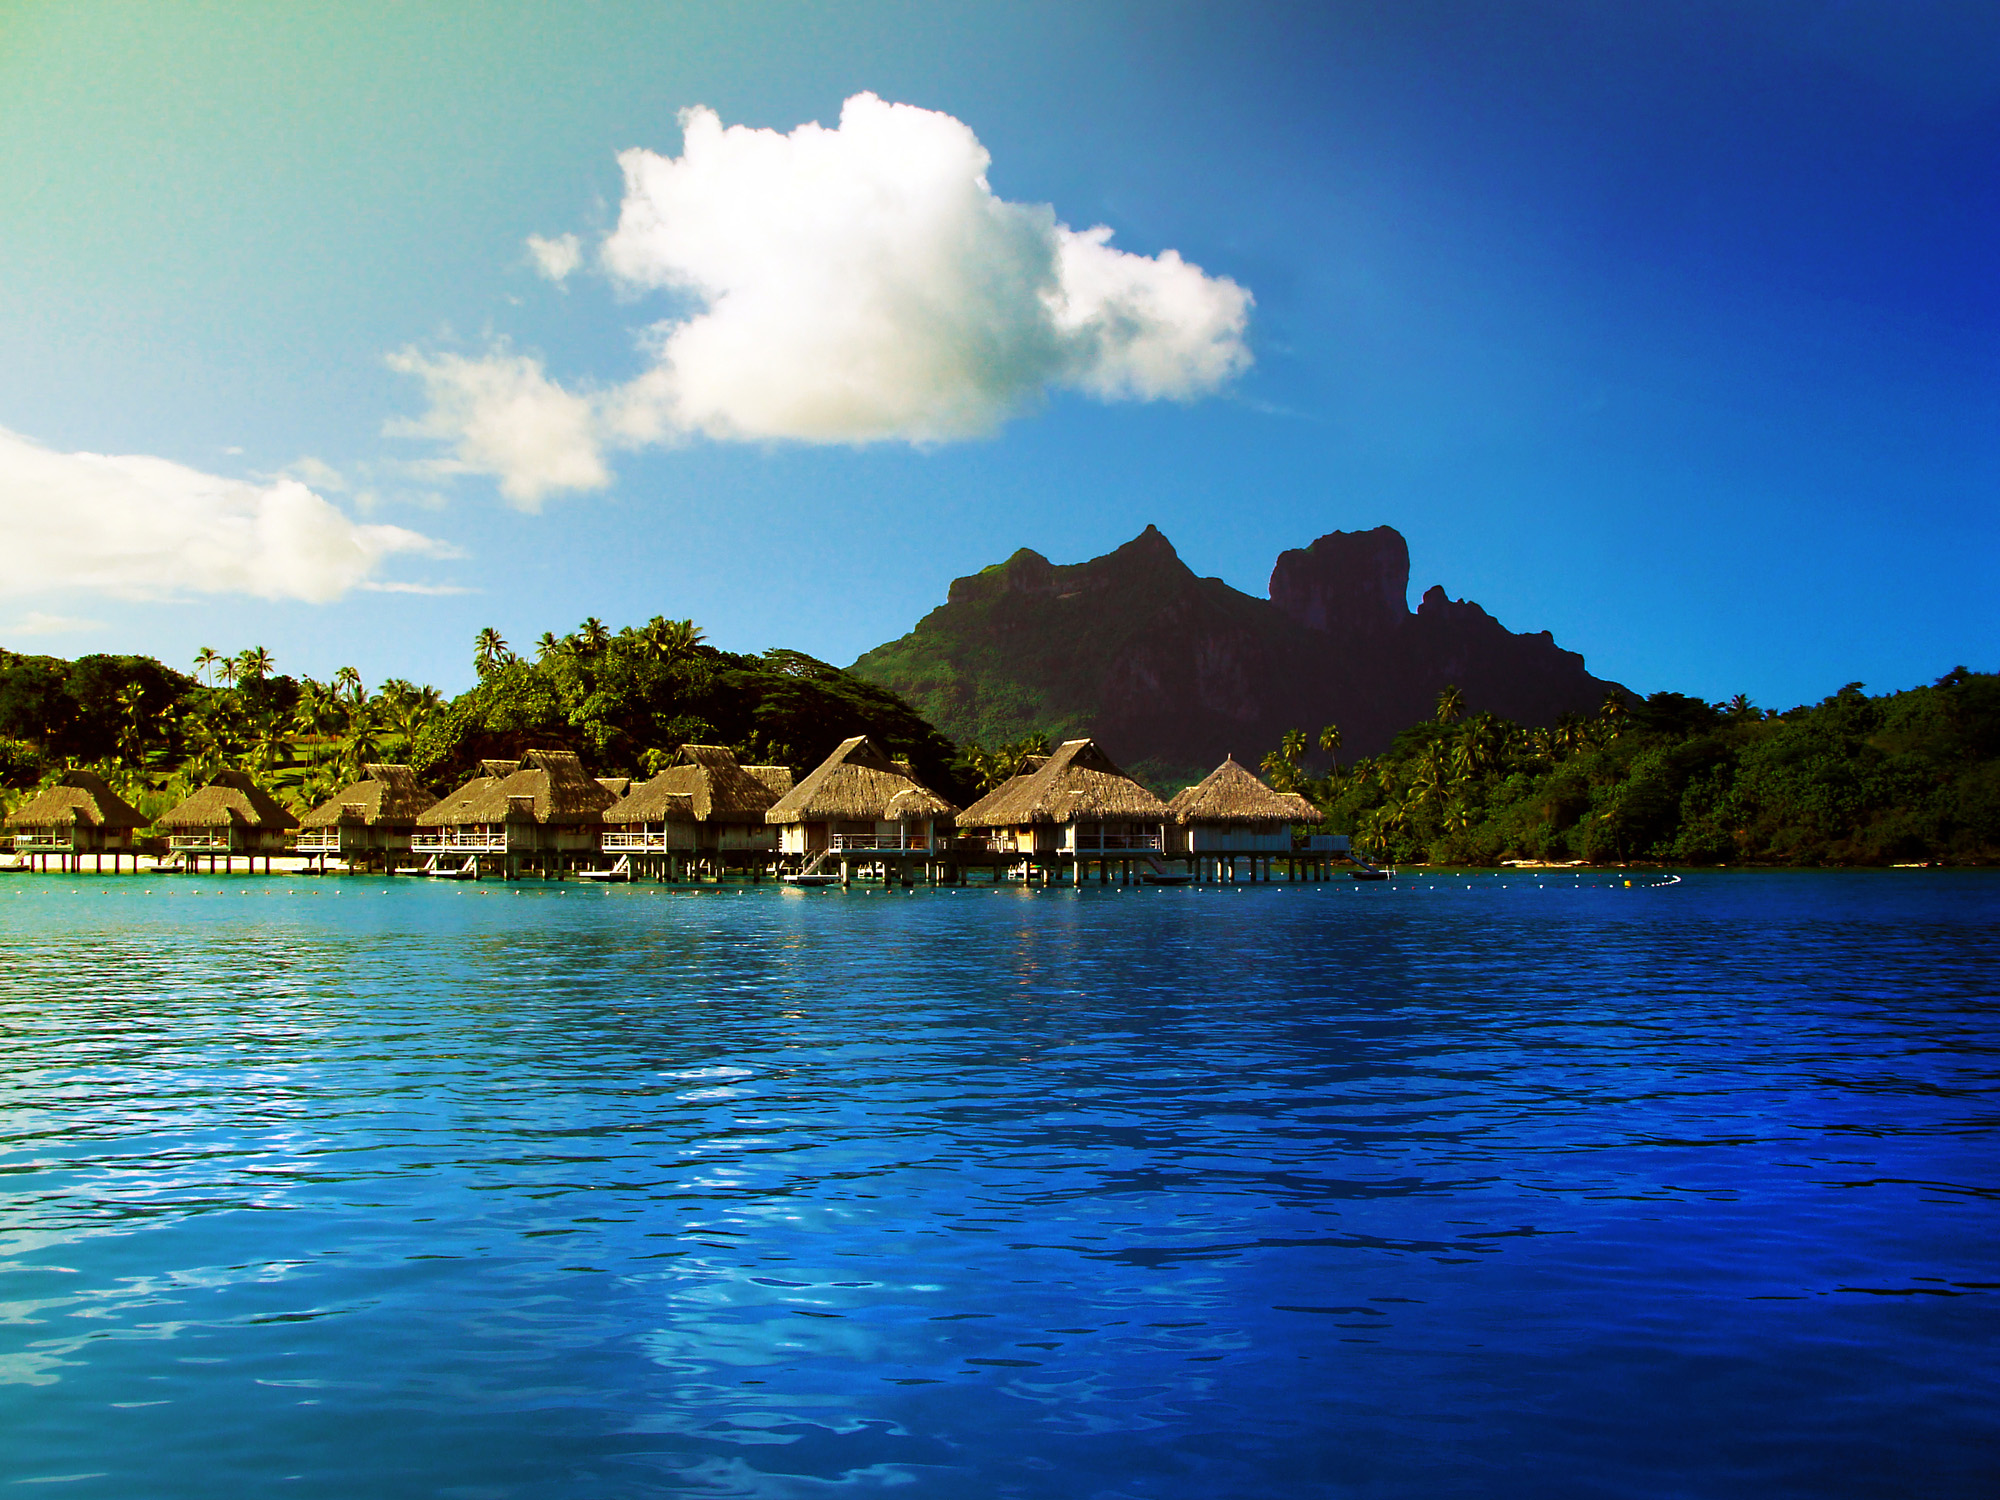 Hd Tropical Island Beach Paradise Wallpapers And Backgrounds: Pictures: Bora Bora, French Polynesia